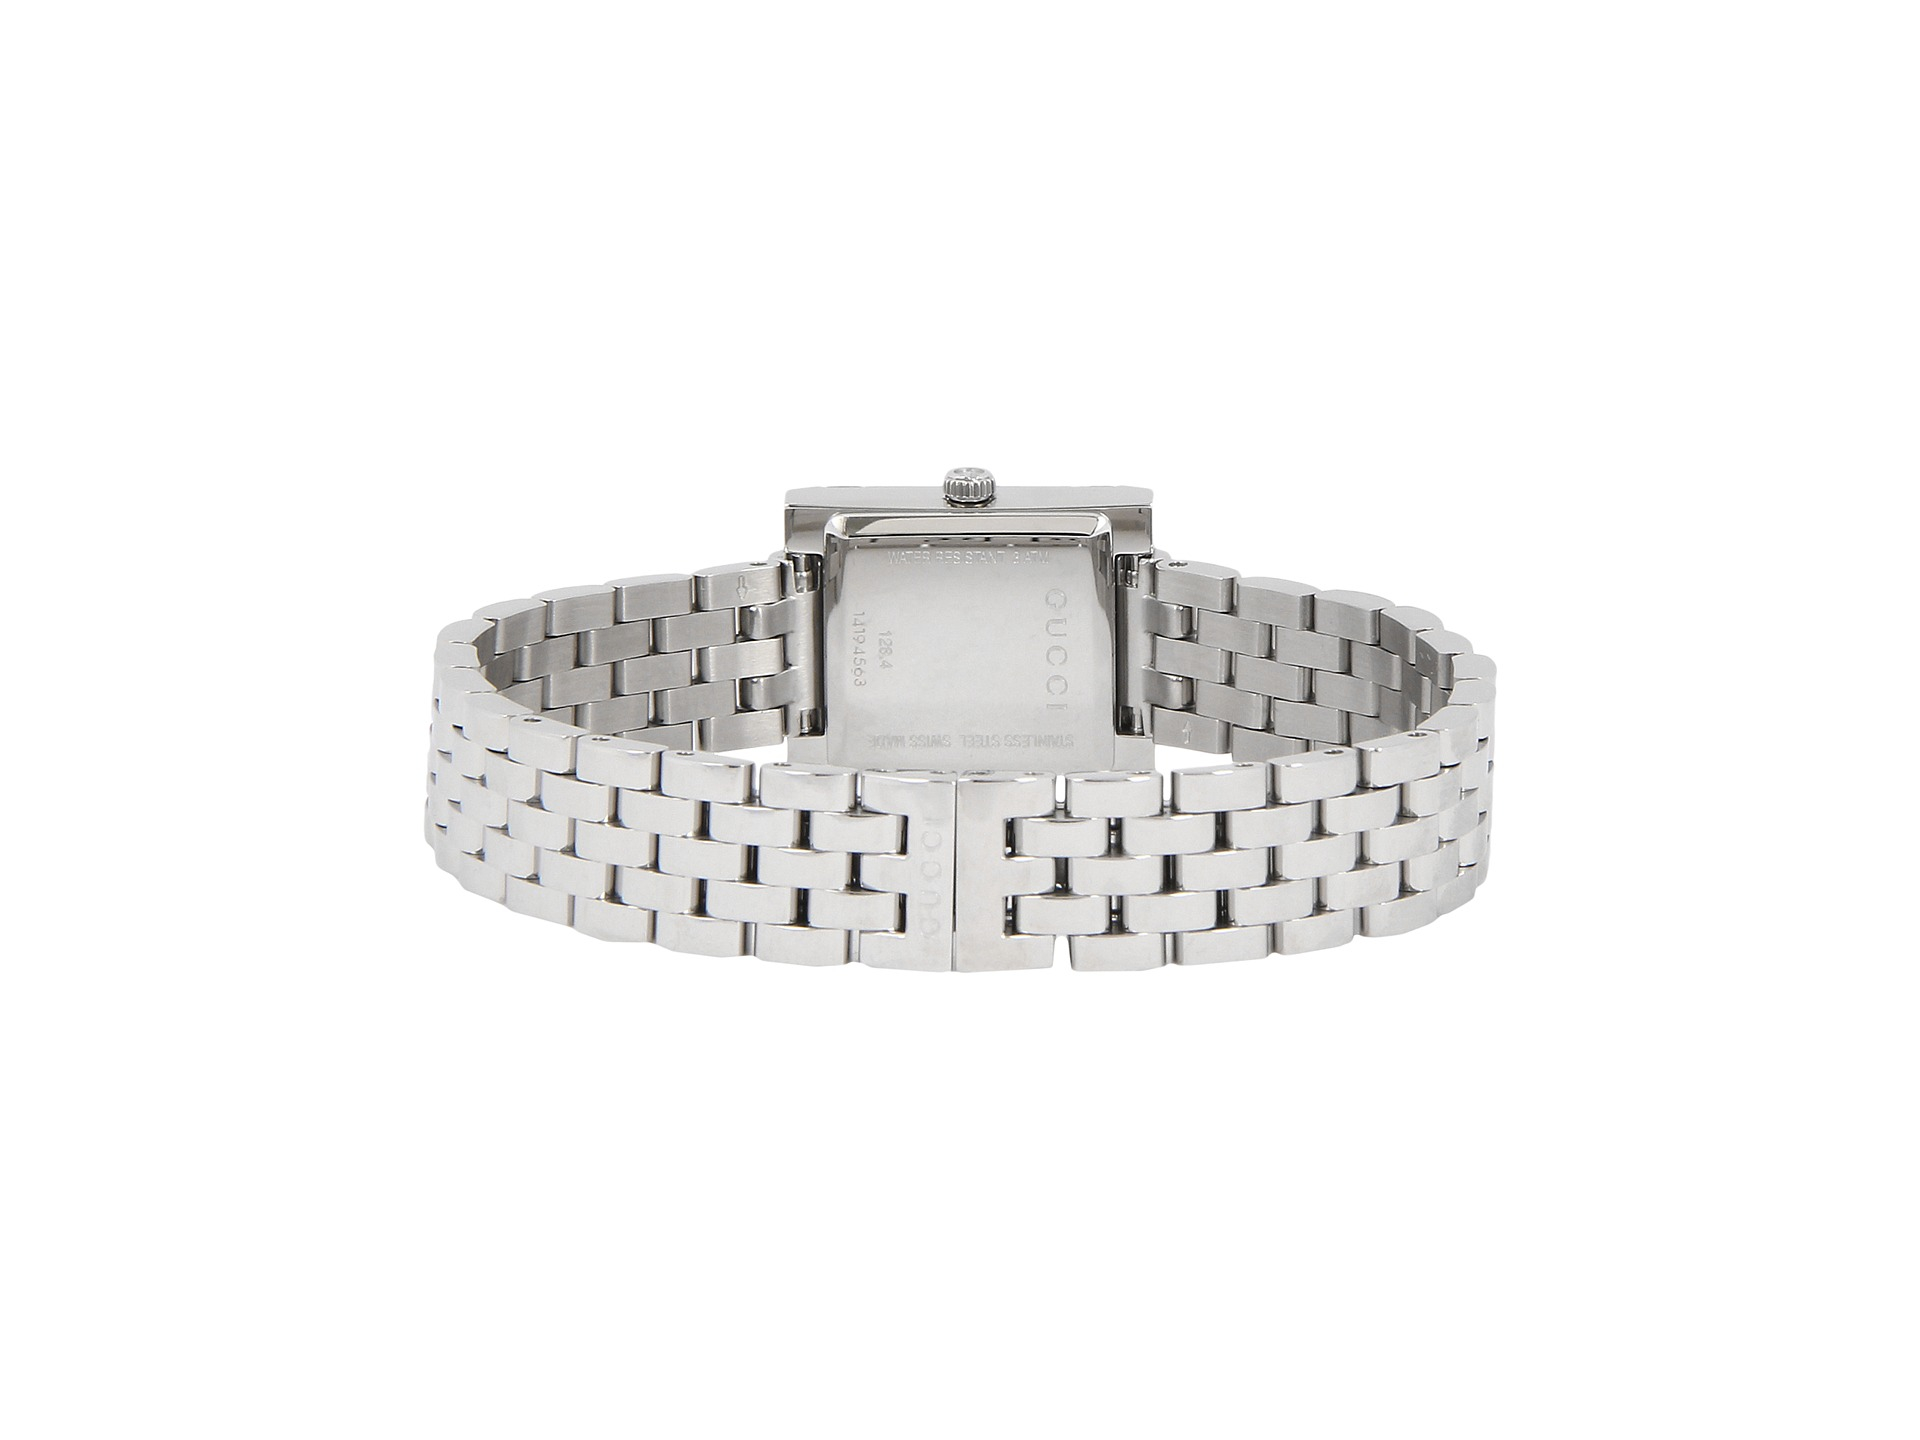 aeb323ab3c6 Lyst - Gucci G-frame 19mm Stainless Steel Watch With Diamonds-ya128401